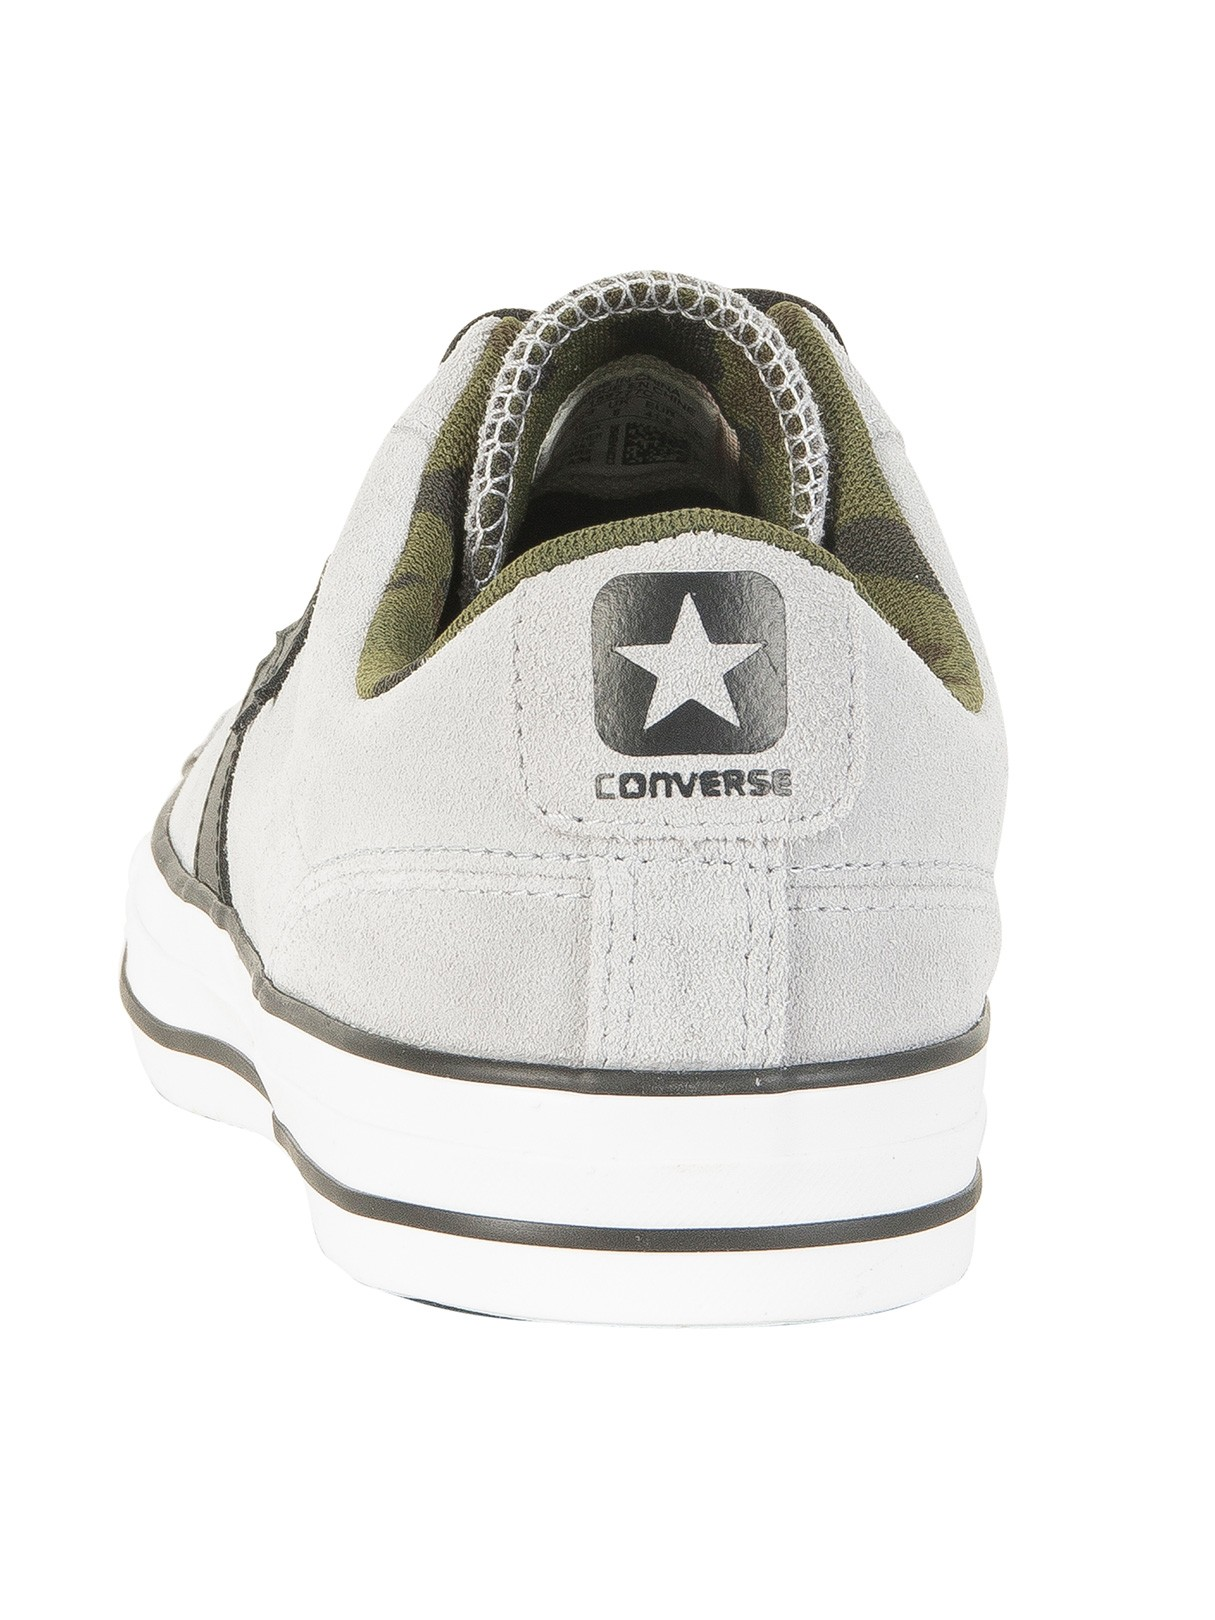 8f819cce064 Converse Wolf Grey Black Camo Star Player Ox Suede Trainers